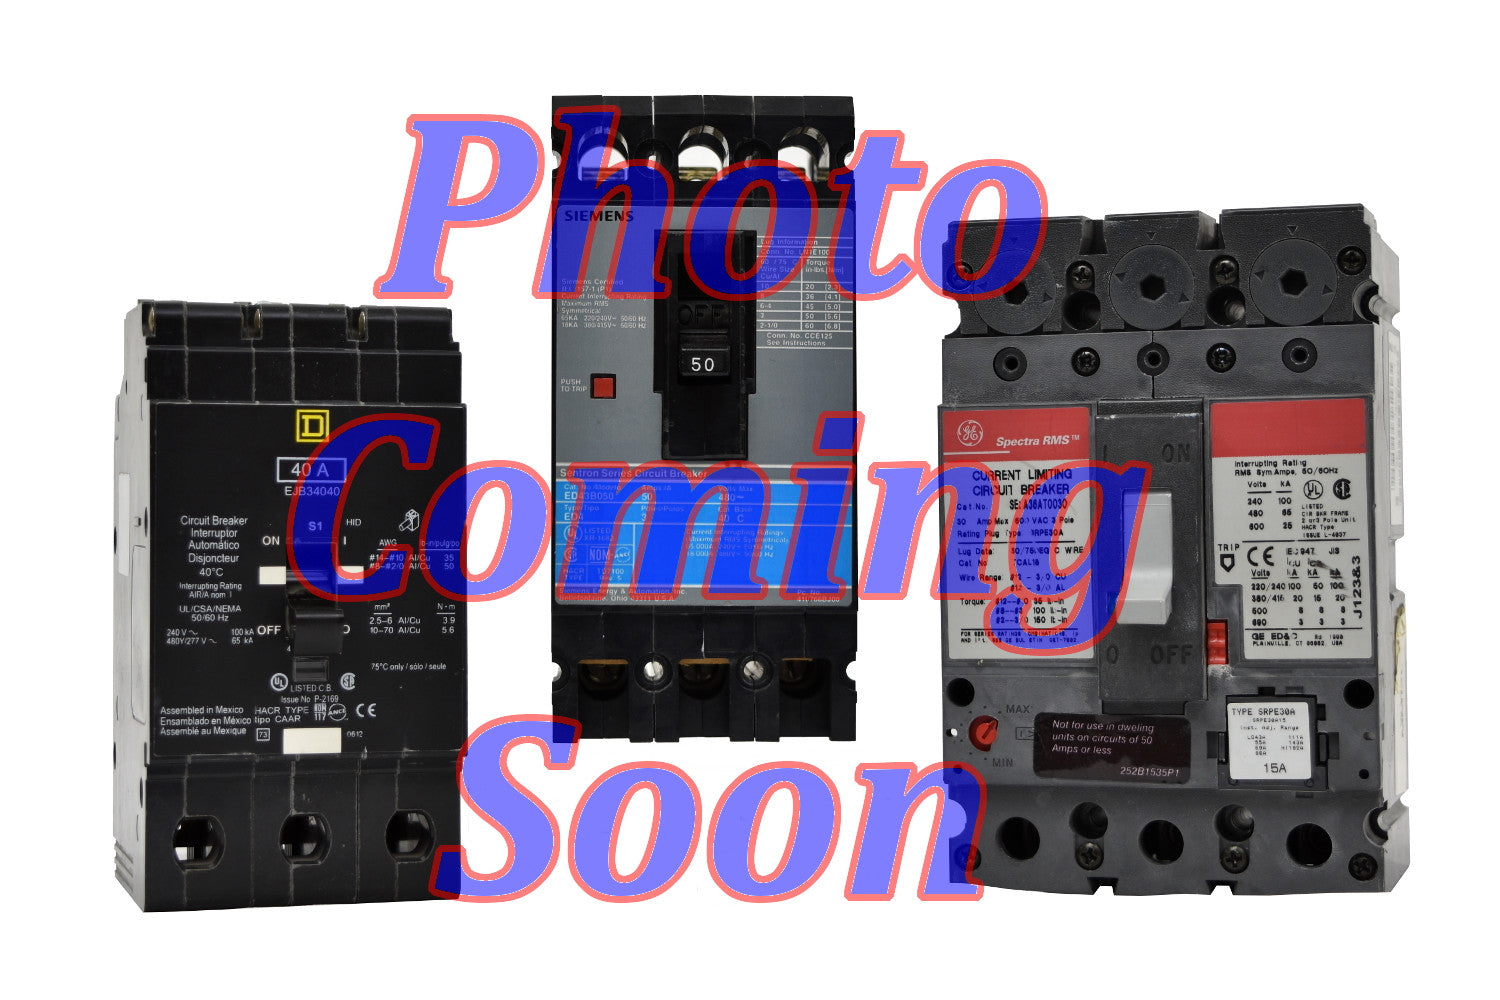 General Electric FCS36TE030R1 Circuit Breakers